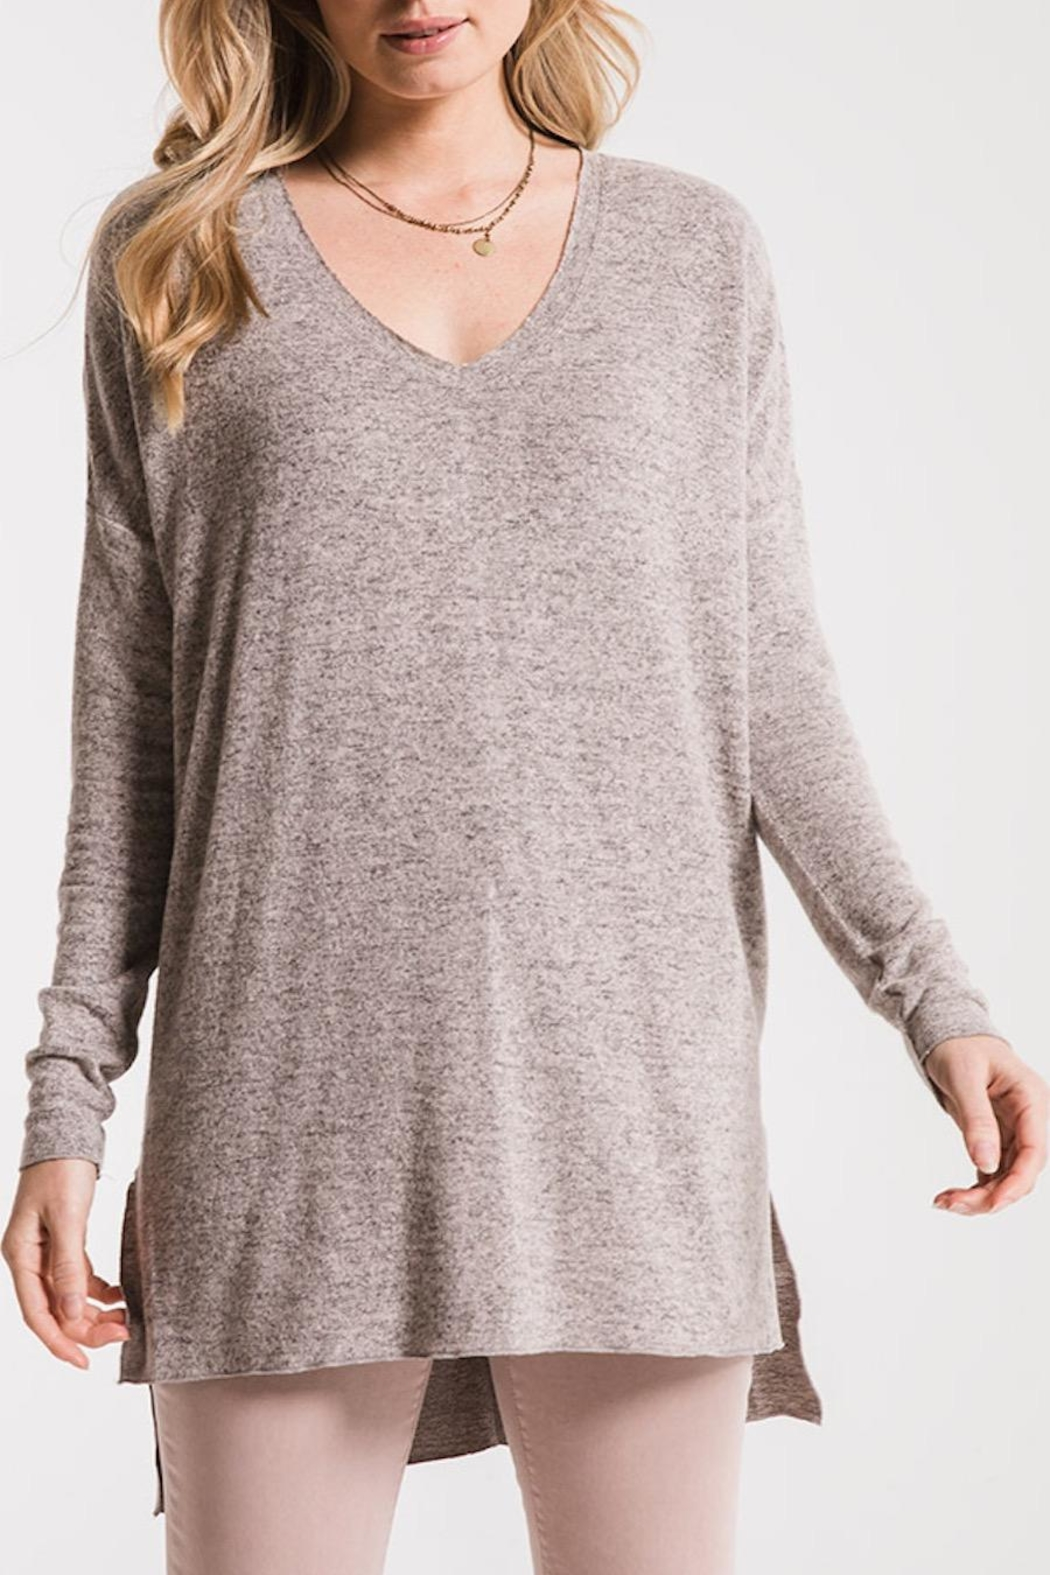 z supply Marled Sweater Tunic - Back Cropped Image